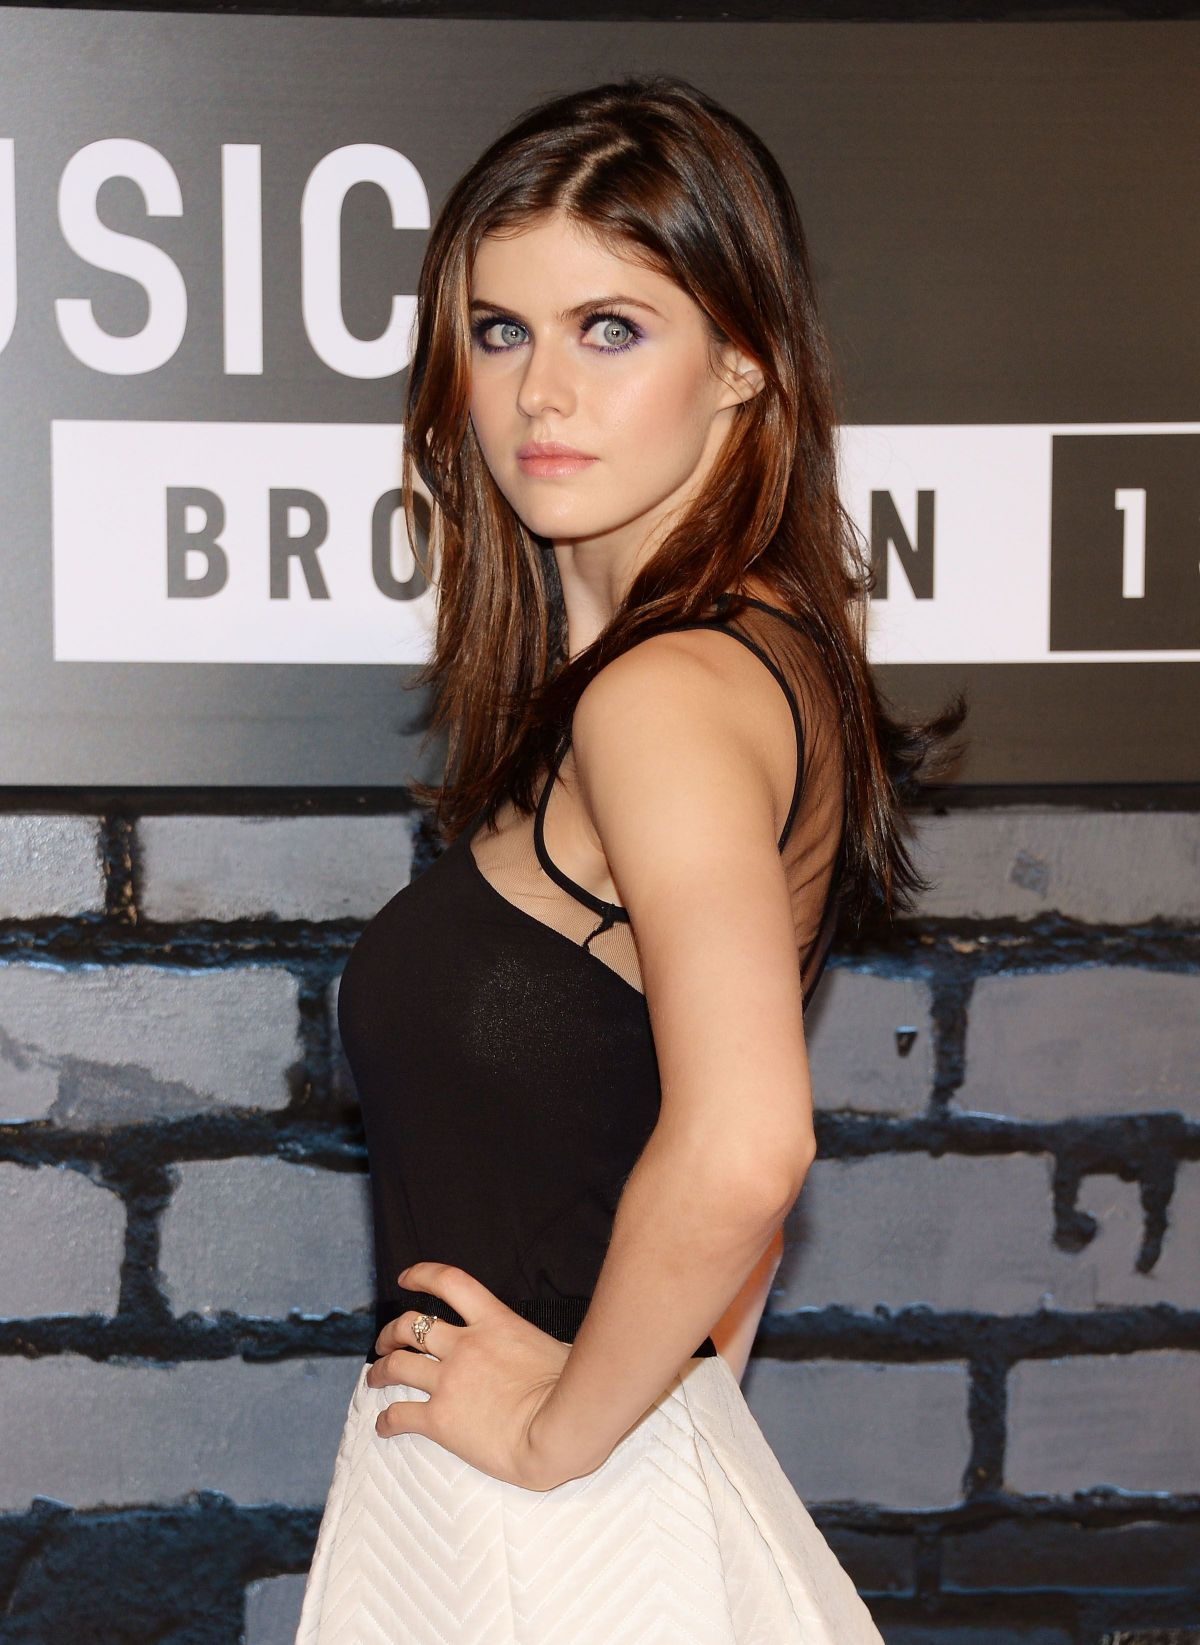 alexandra-daddario-naked-photos